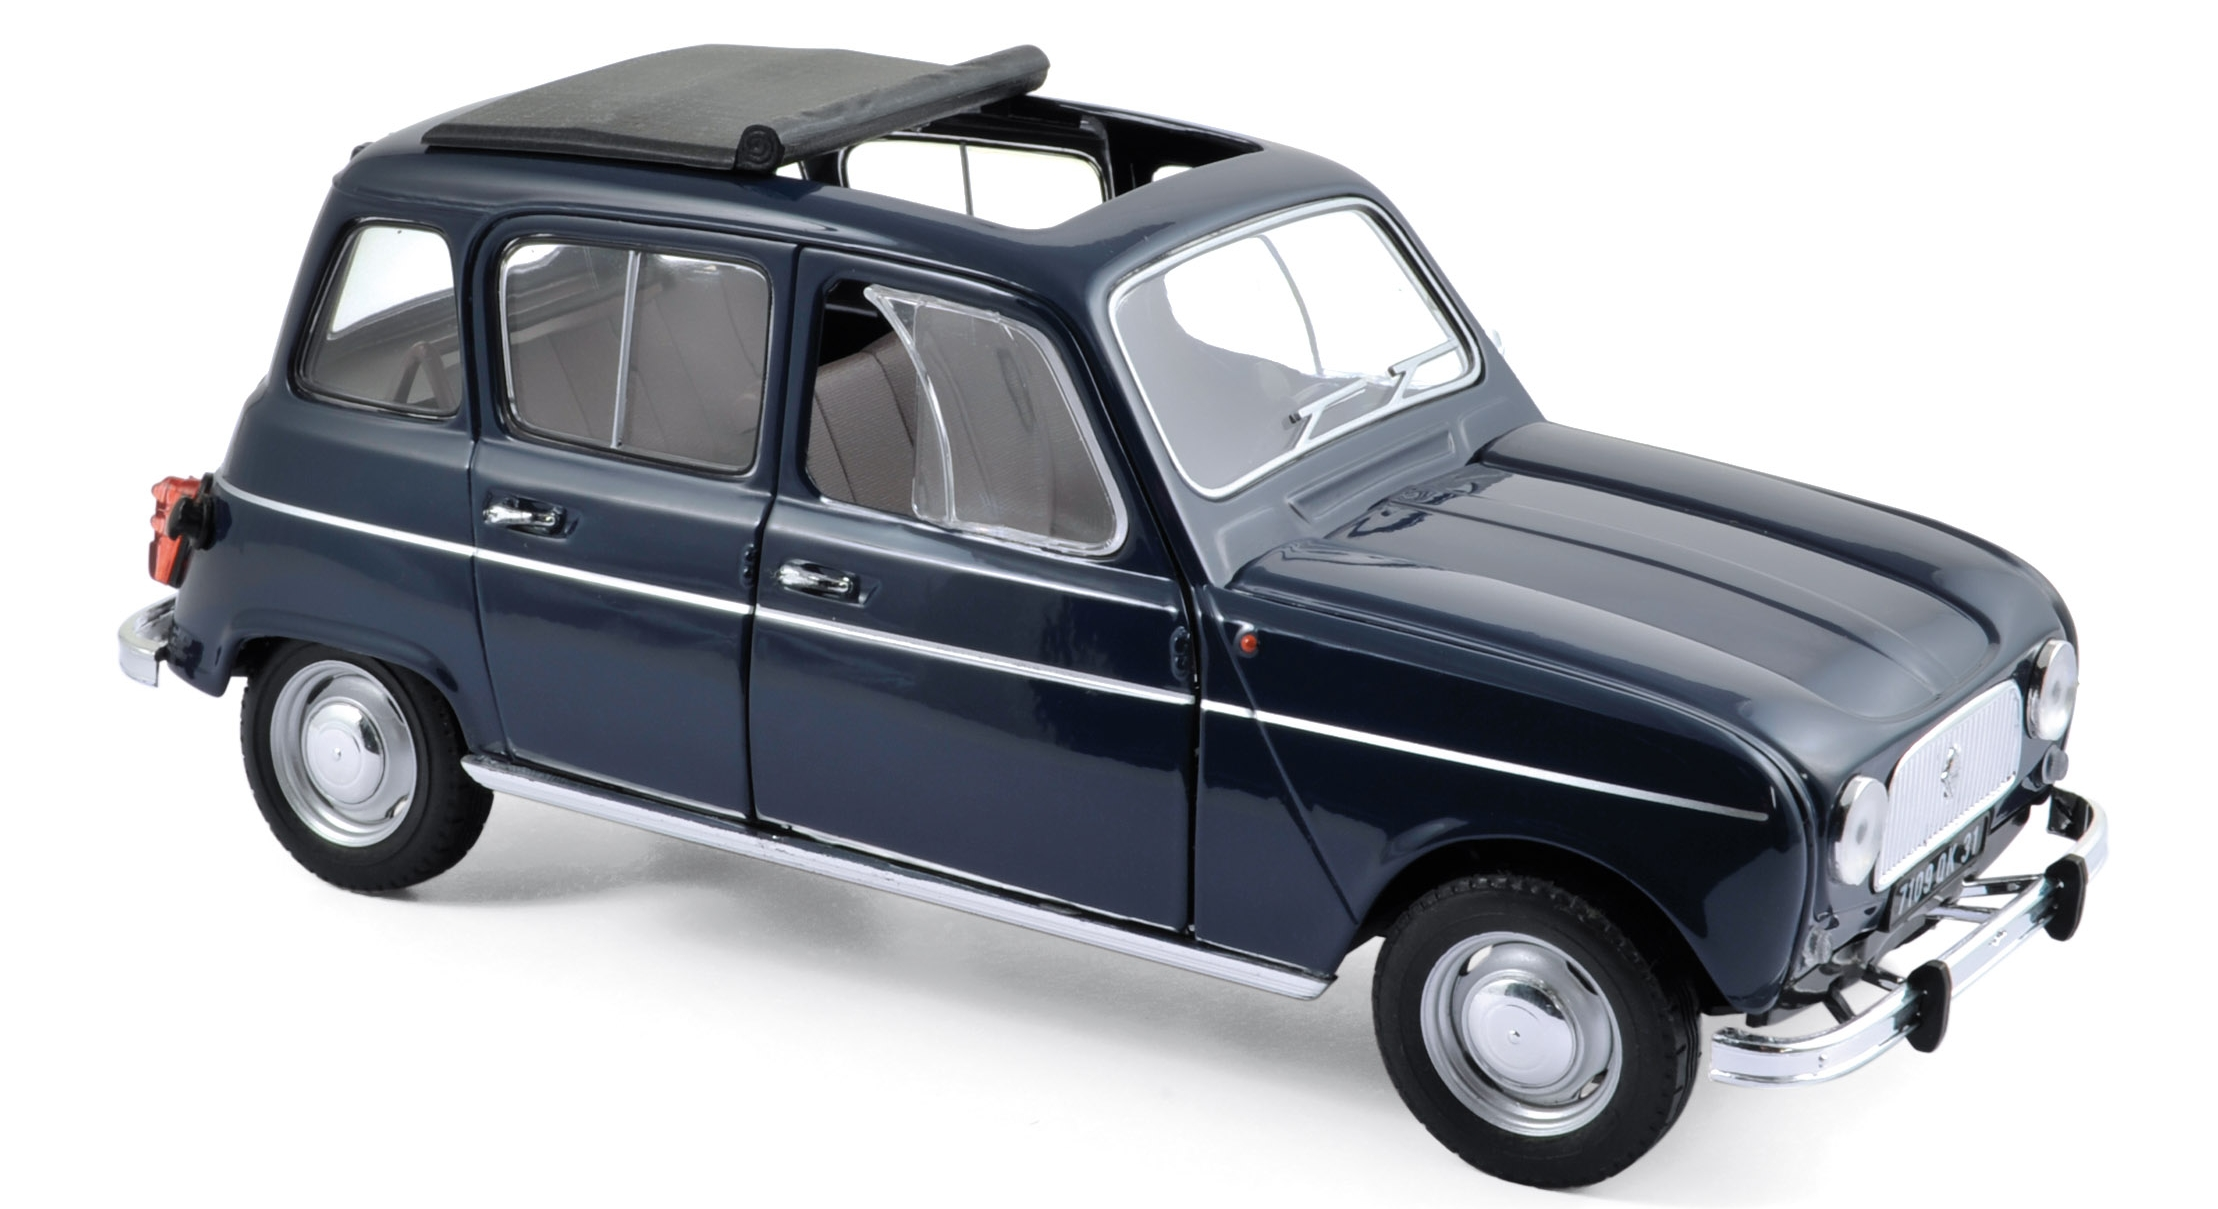 185241    Renault 4 1965, Copenhague blue, Norev